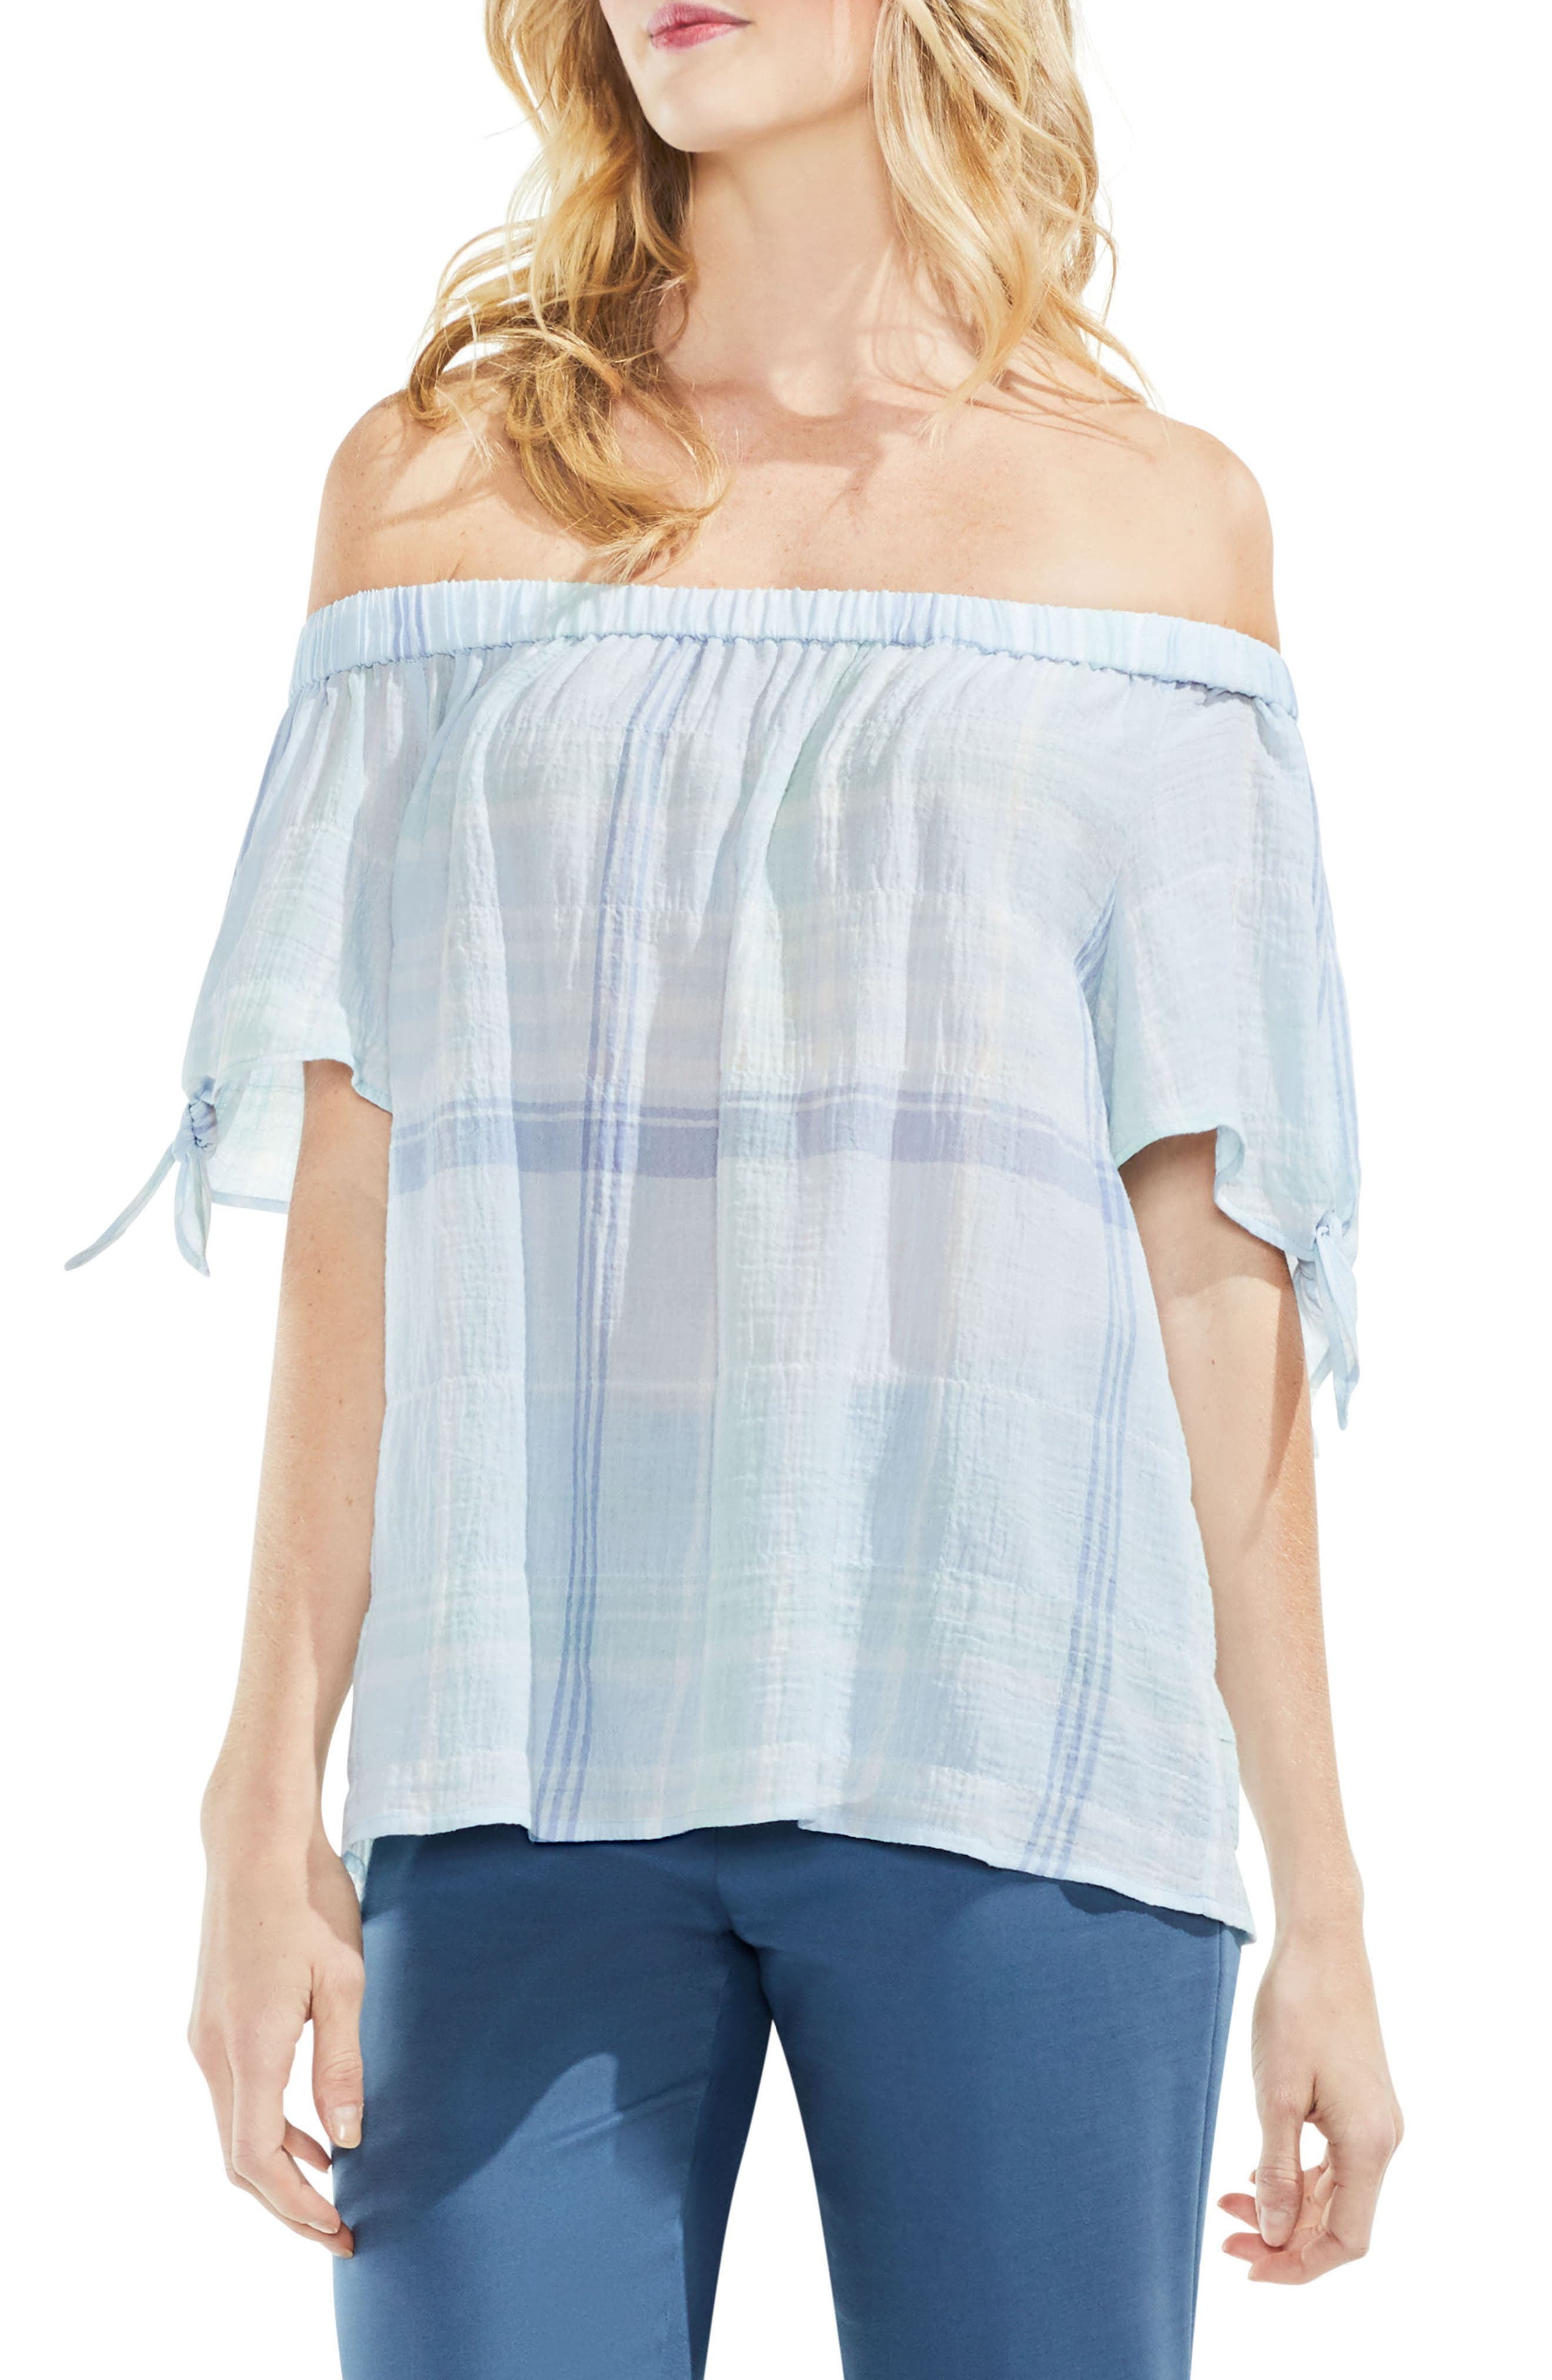 Vince Camuto Crinkle Stretch Cotton Off the Shoulder Top (Regular & Petite)